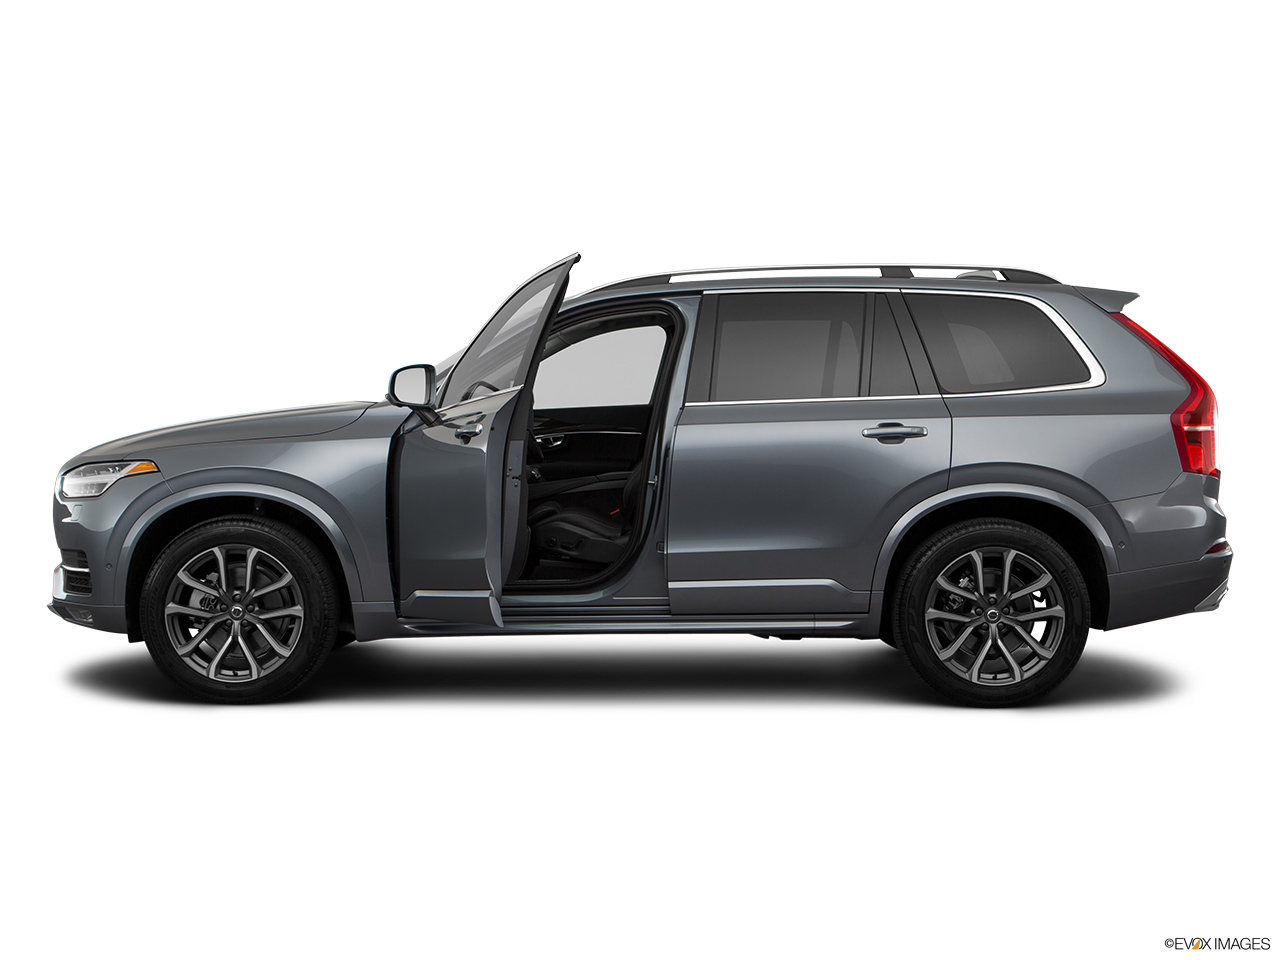 volvo xc90 2017 t6 excellence in uae new car prices. Black Bedroom Furniture Sets. Home Design Ideas